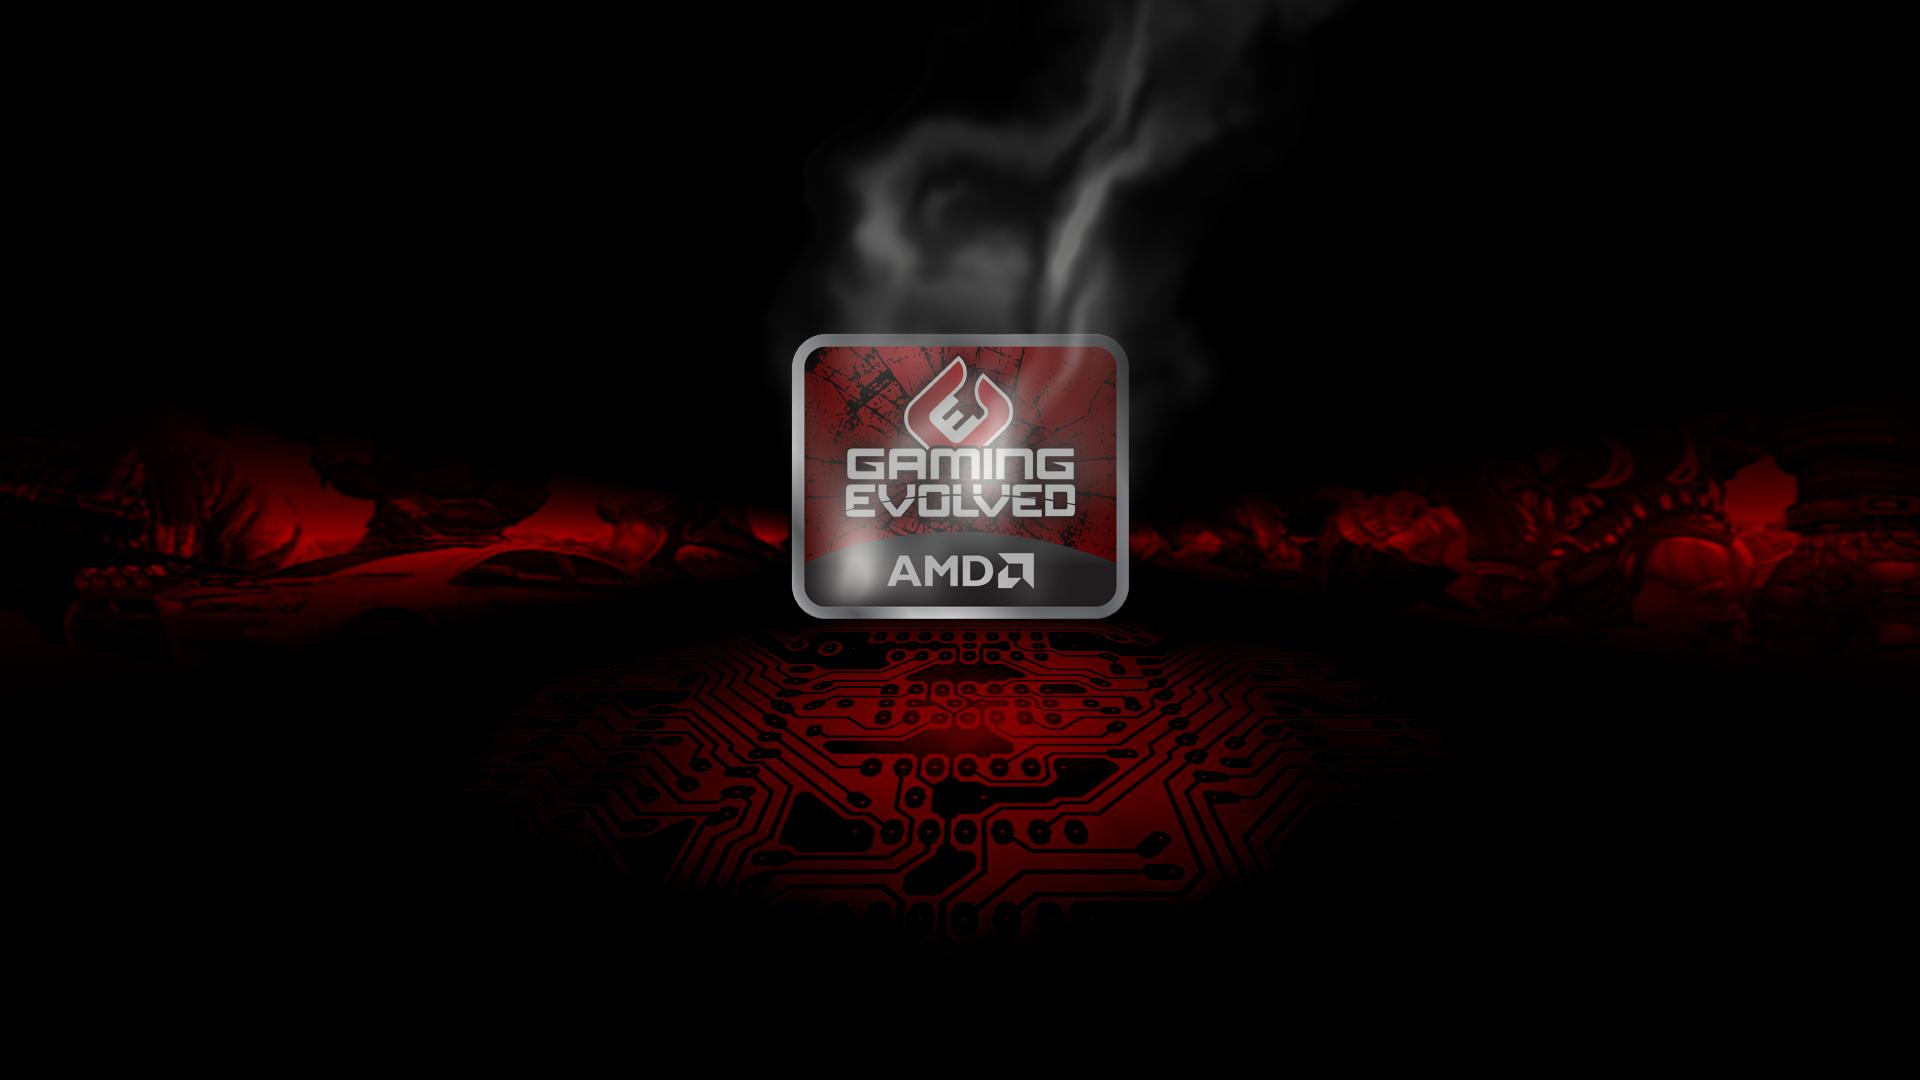 amd radeon wallpapers hd - photo #2